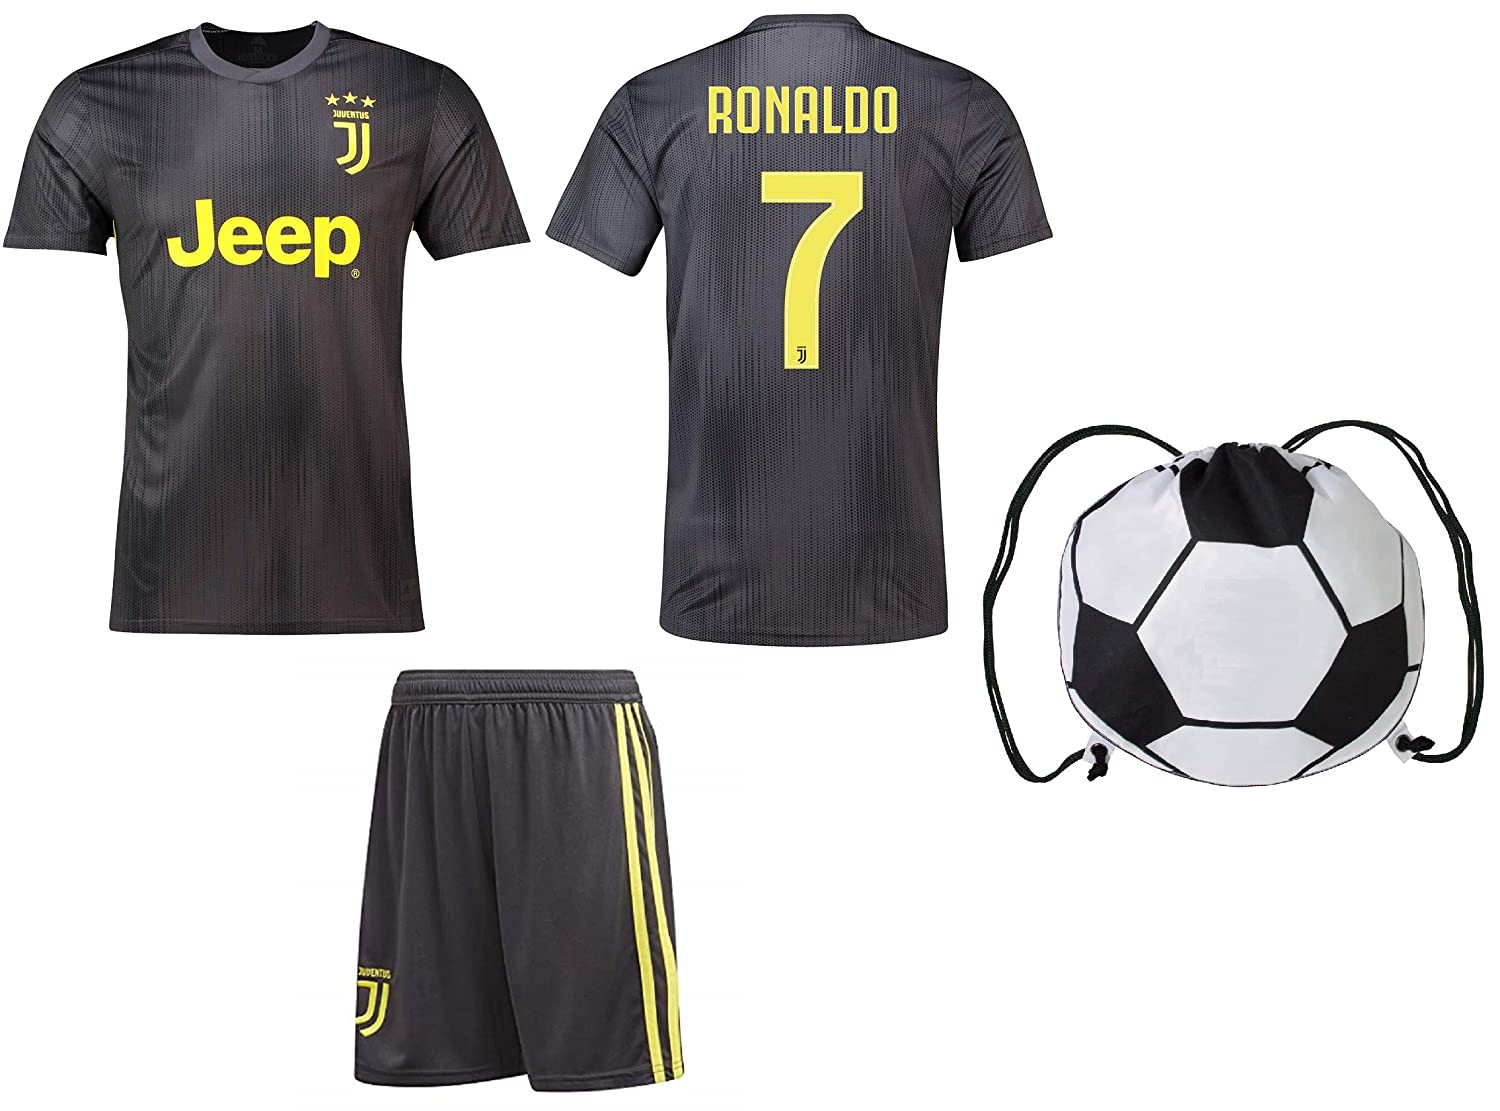 promo code dad1a 075f1 Cristiano Ronaldo Juventus #7 Youth Soccer Jersey Away Short Sleeve Shorts  Kit Kids Gift Set